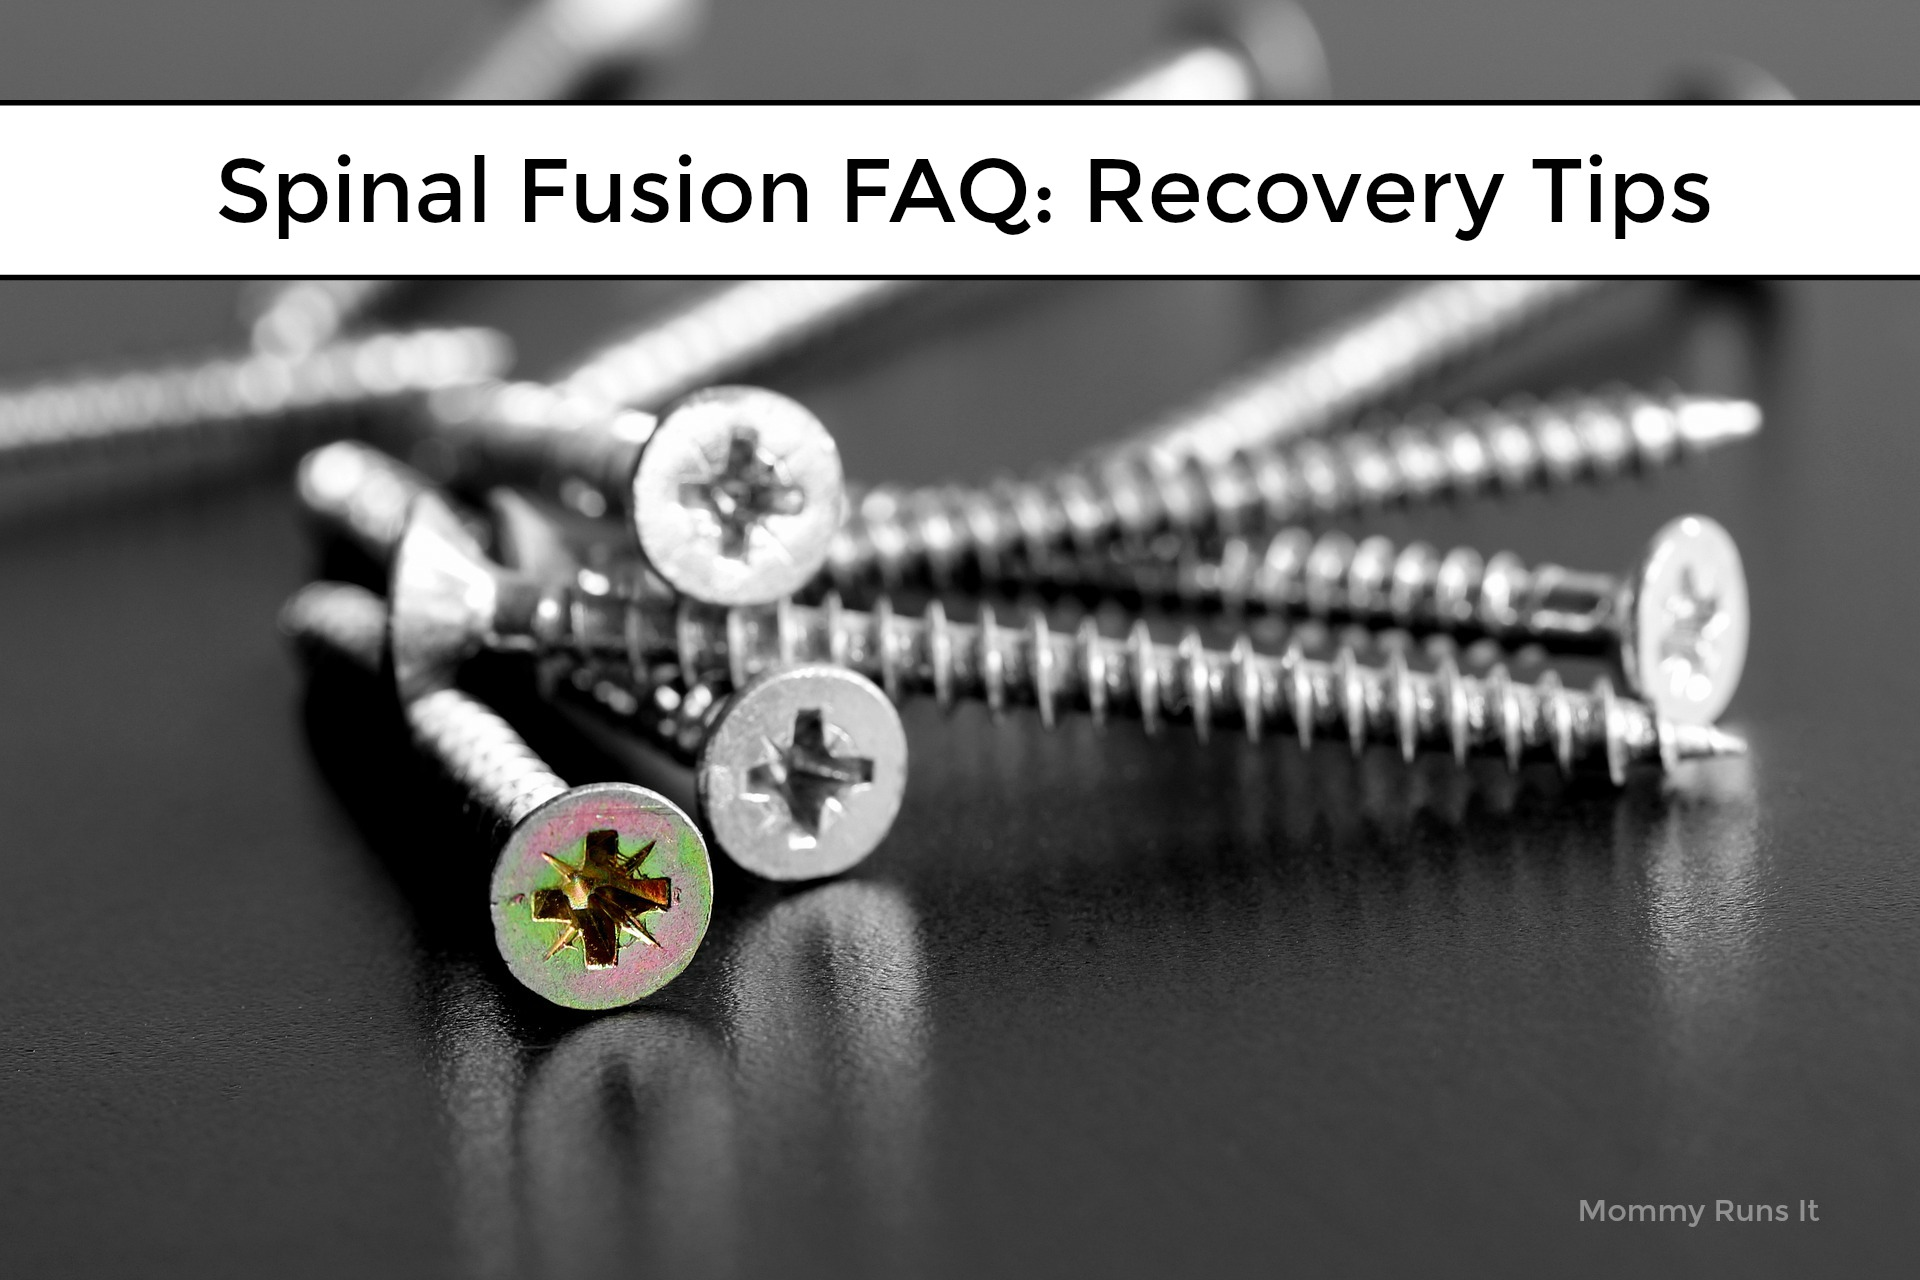 Spinal Fusion FAQ: Do You Have Any Spinal Fusion Surgery Recovery Tips? | Mommy Runs It